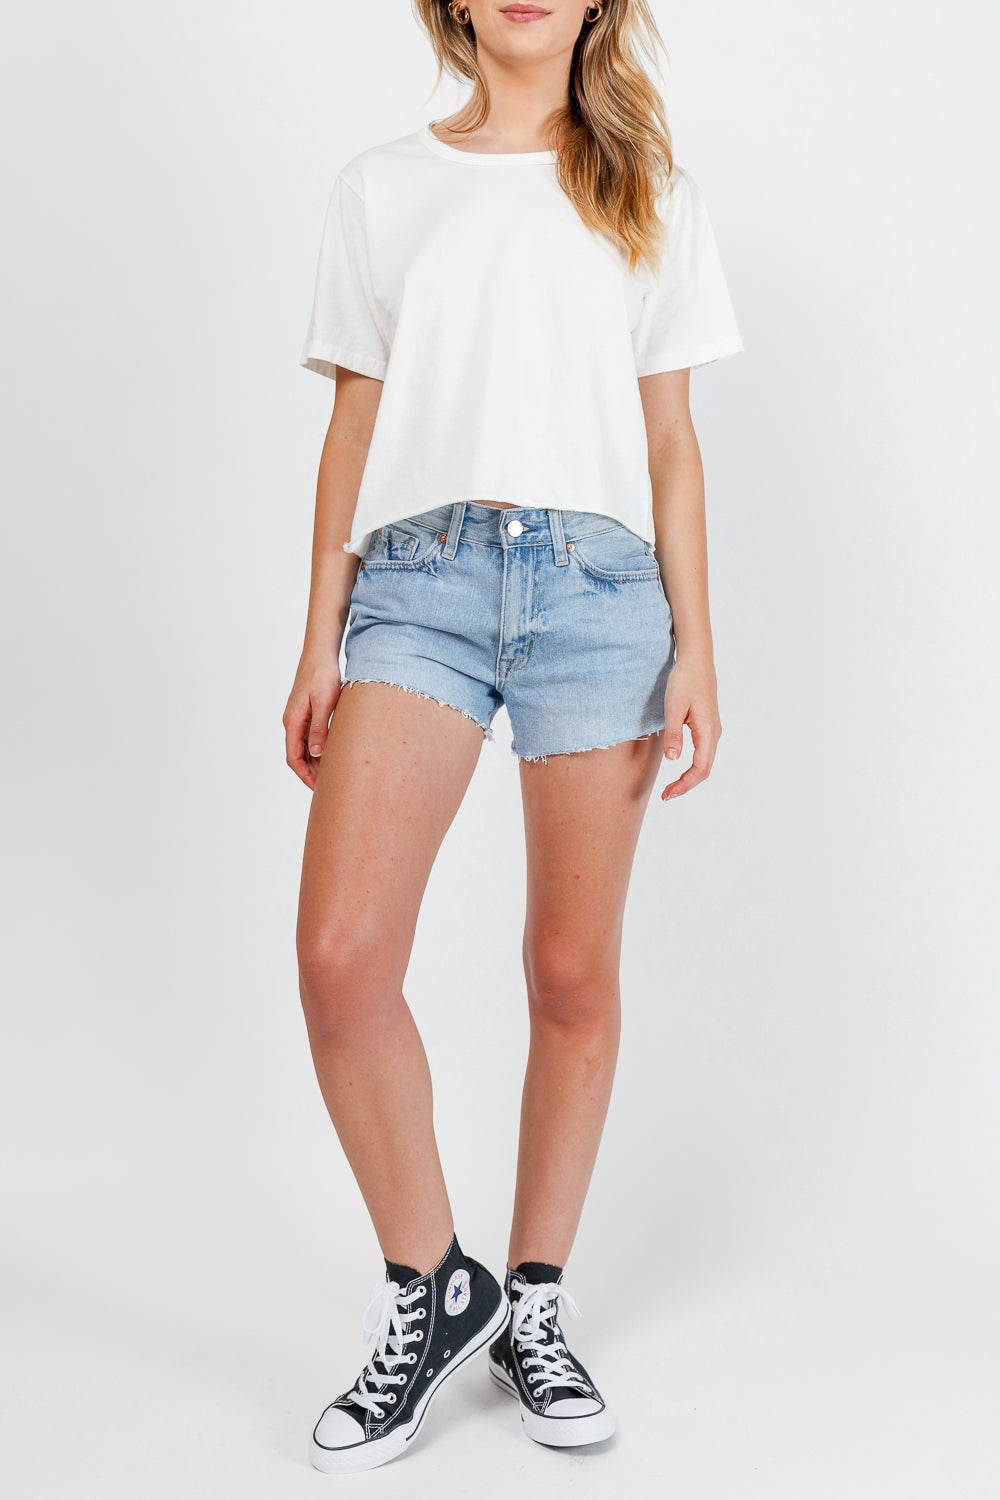 Vintage Crop Tee - Washed White